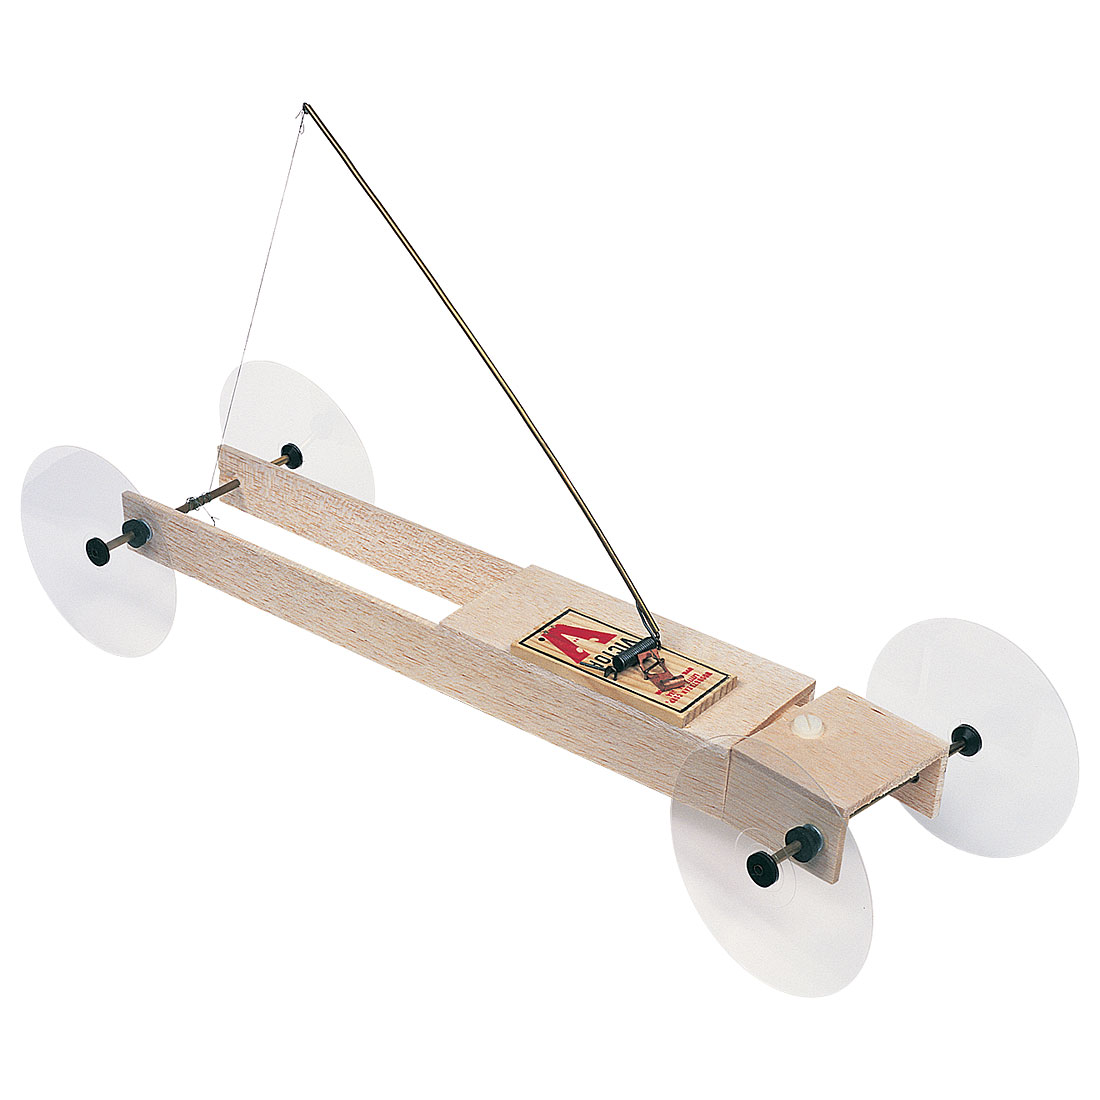 Mousetrap Vehicles